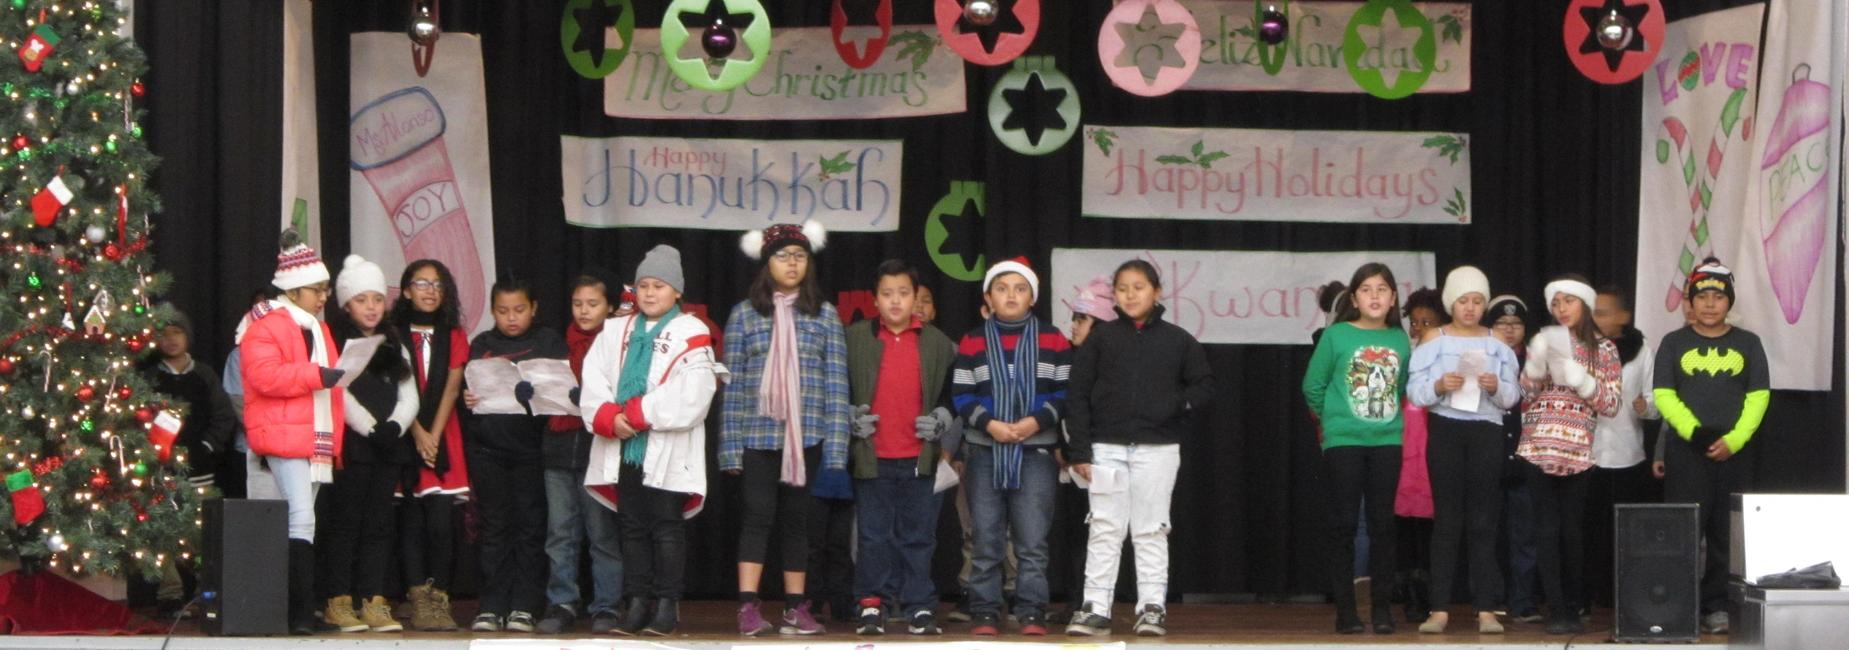 Students stand on stage during a Christmas performance.